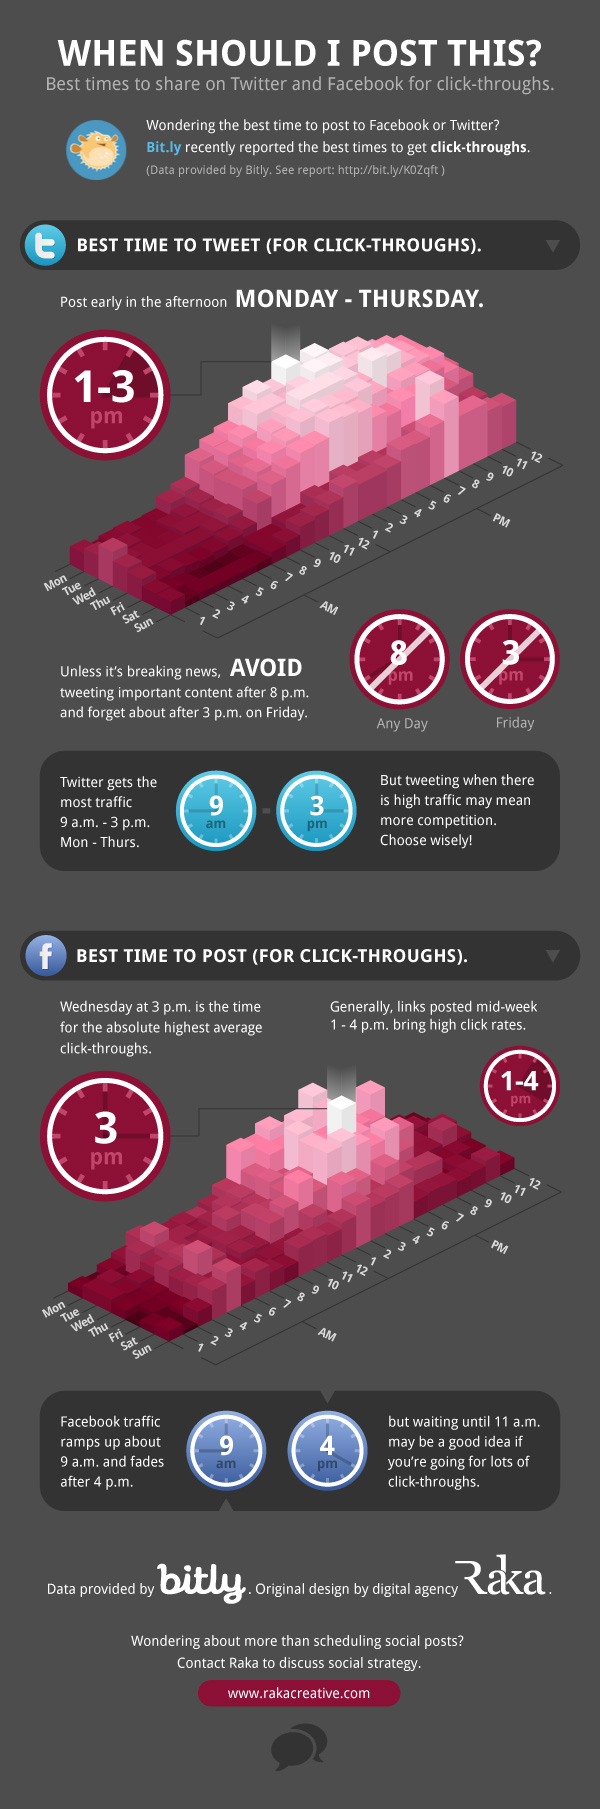 Best Times To Tweet or Post to Facebook for Click-Throughs